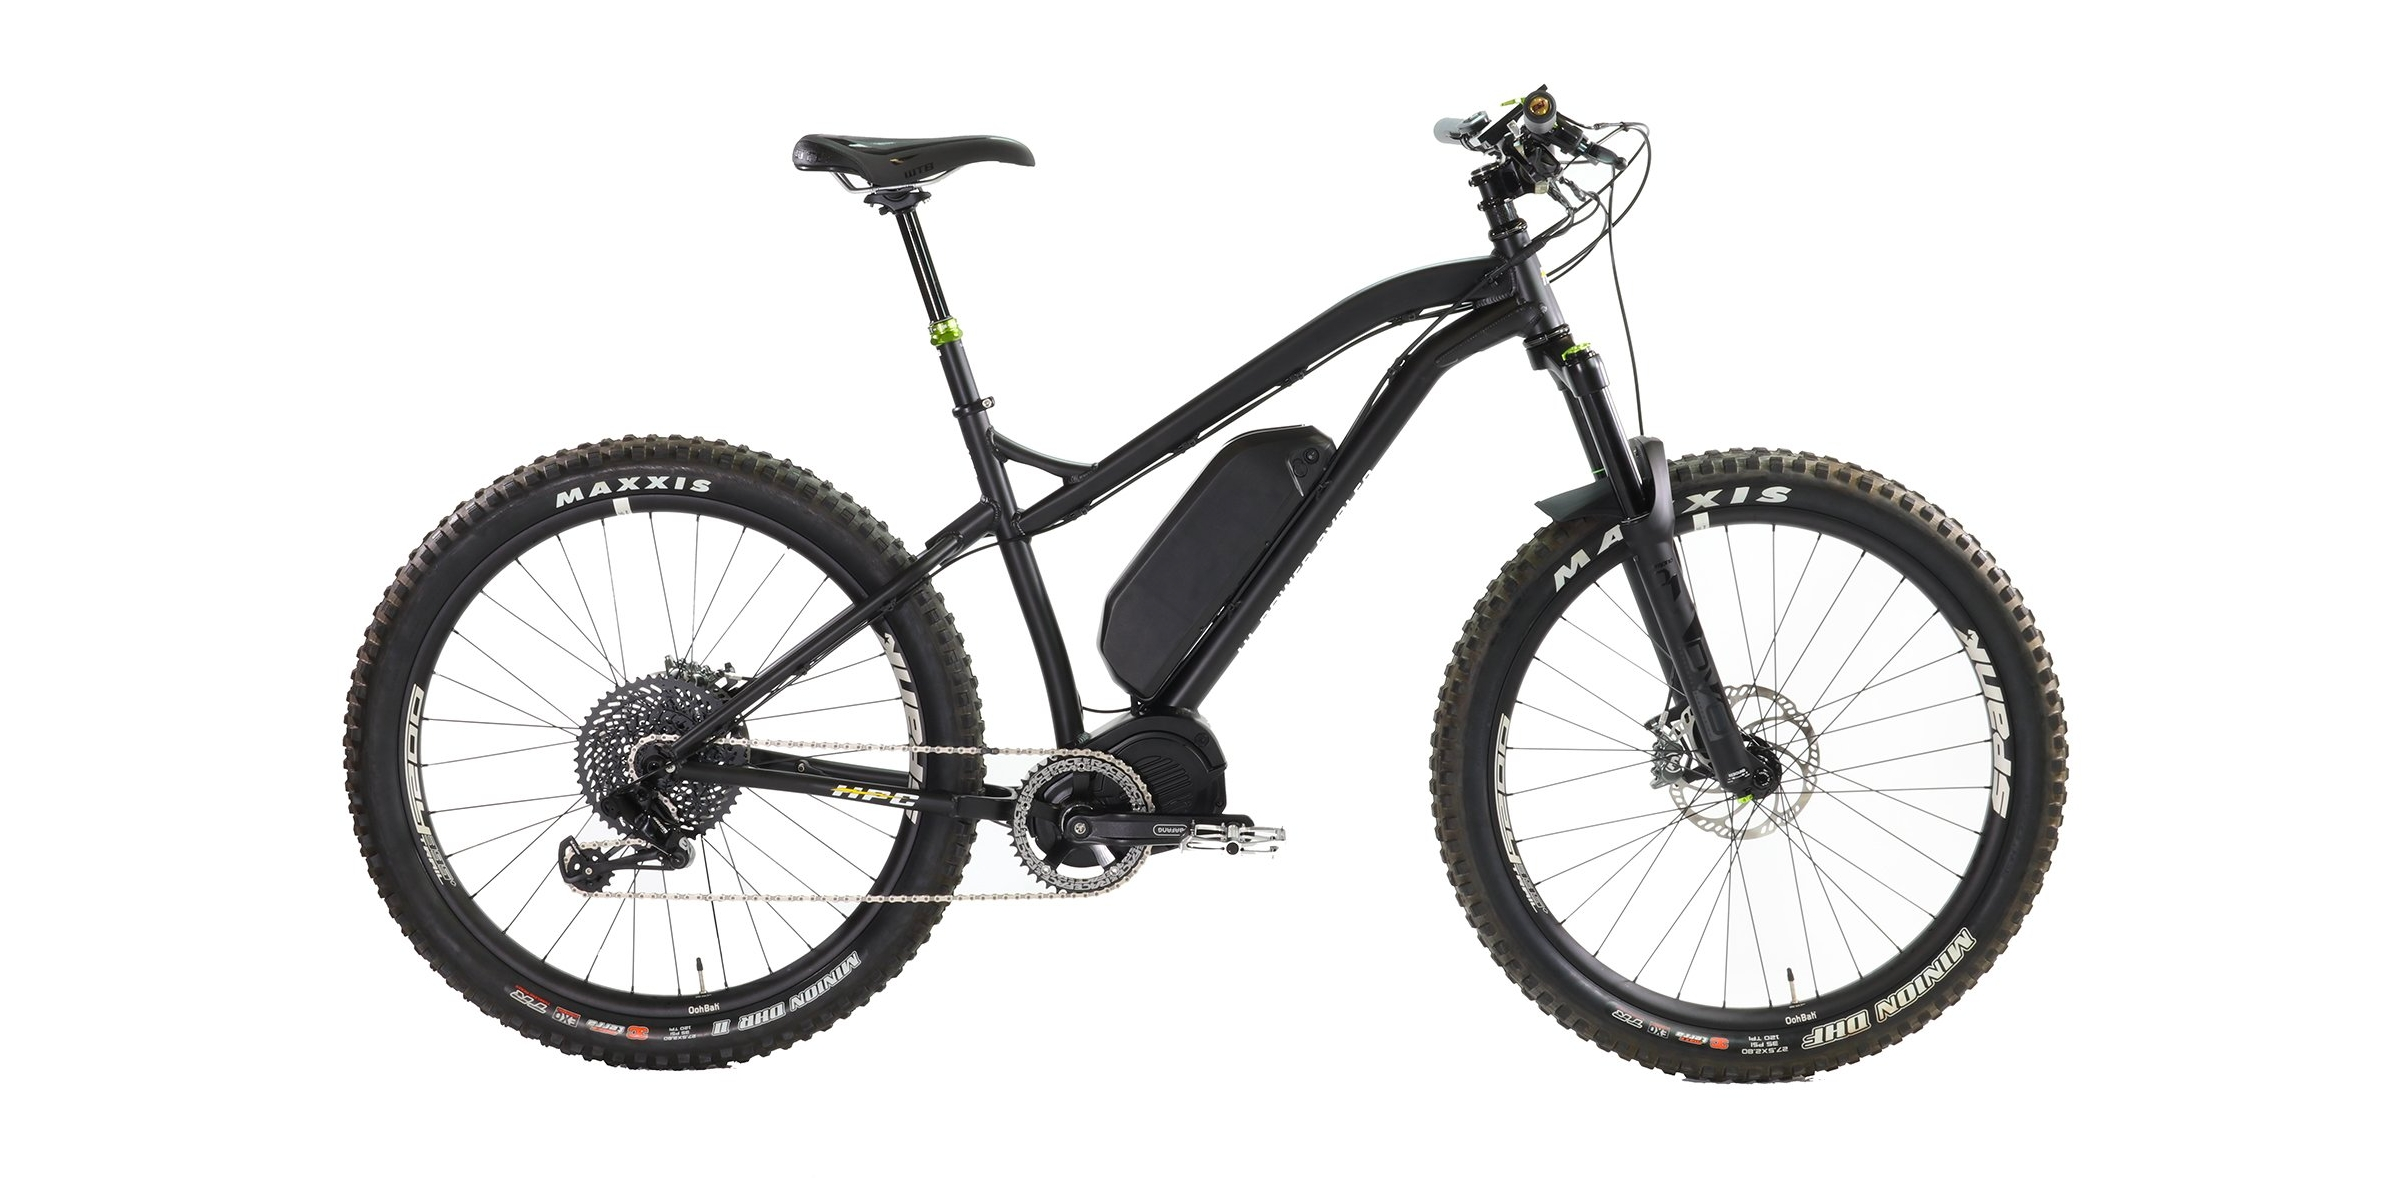 Believe it or not, this US-built fast e-bike hits 45 mph and 80 miles of range